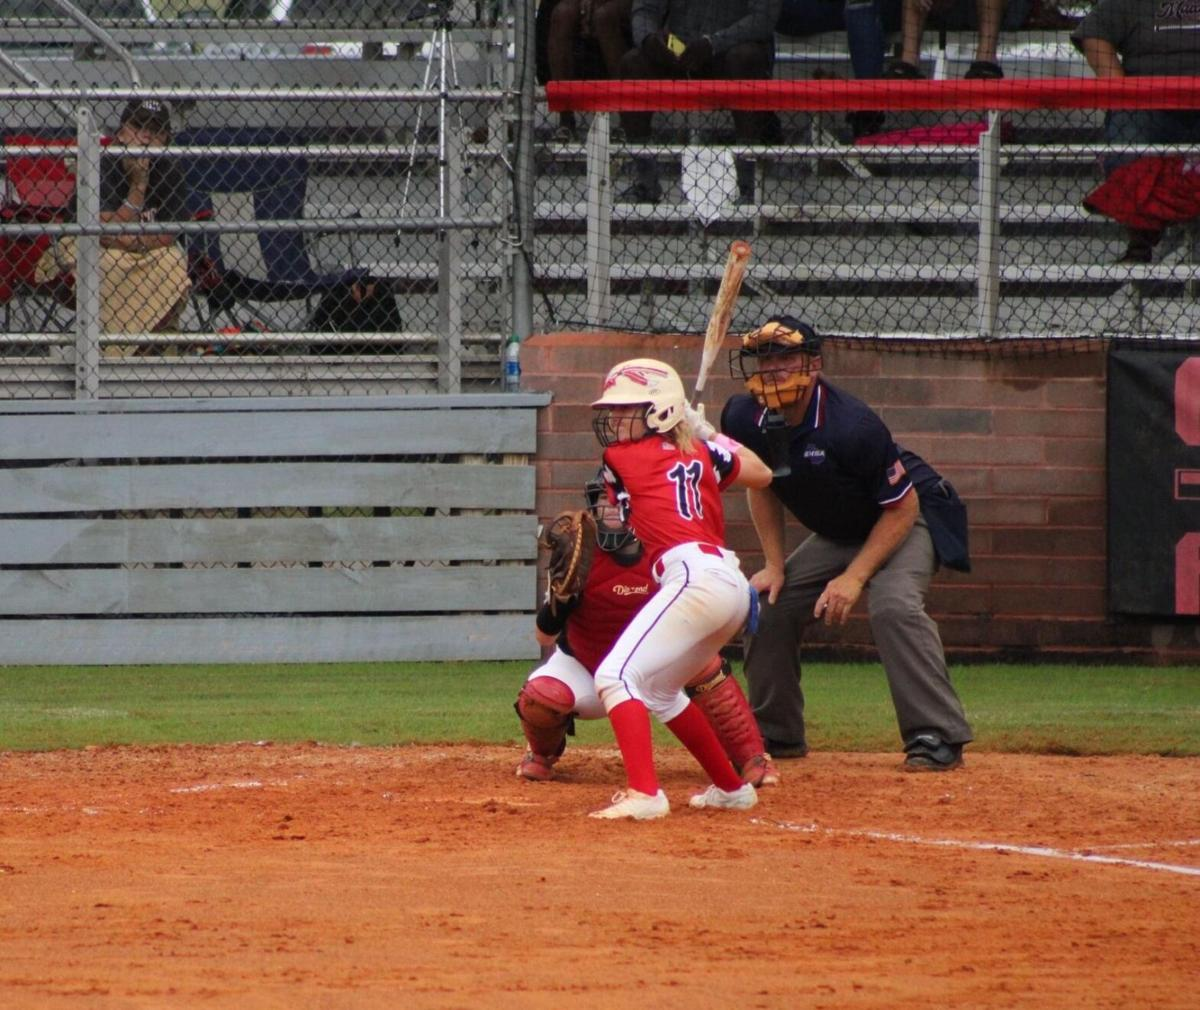 Maidens fall to Screven in first round of playoffs